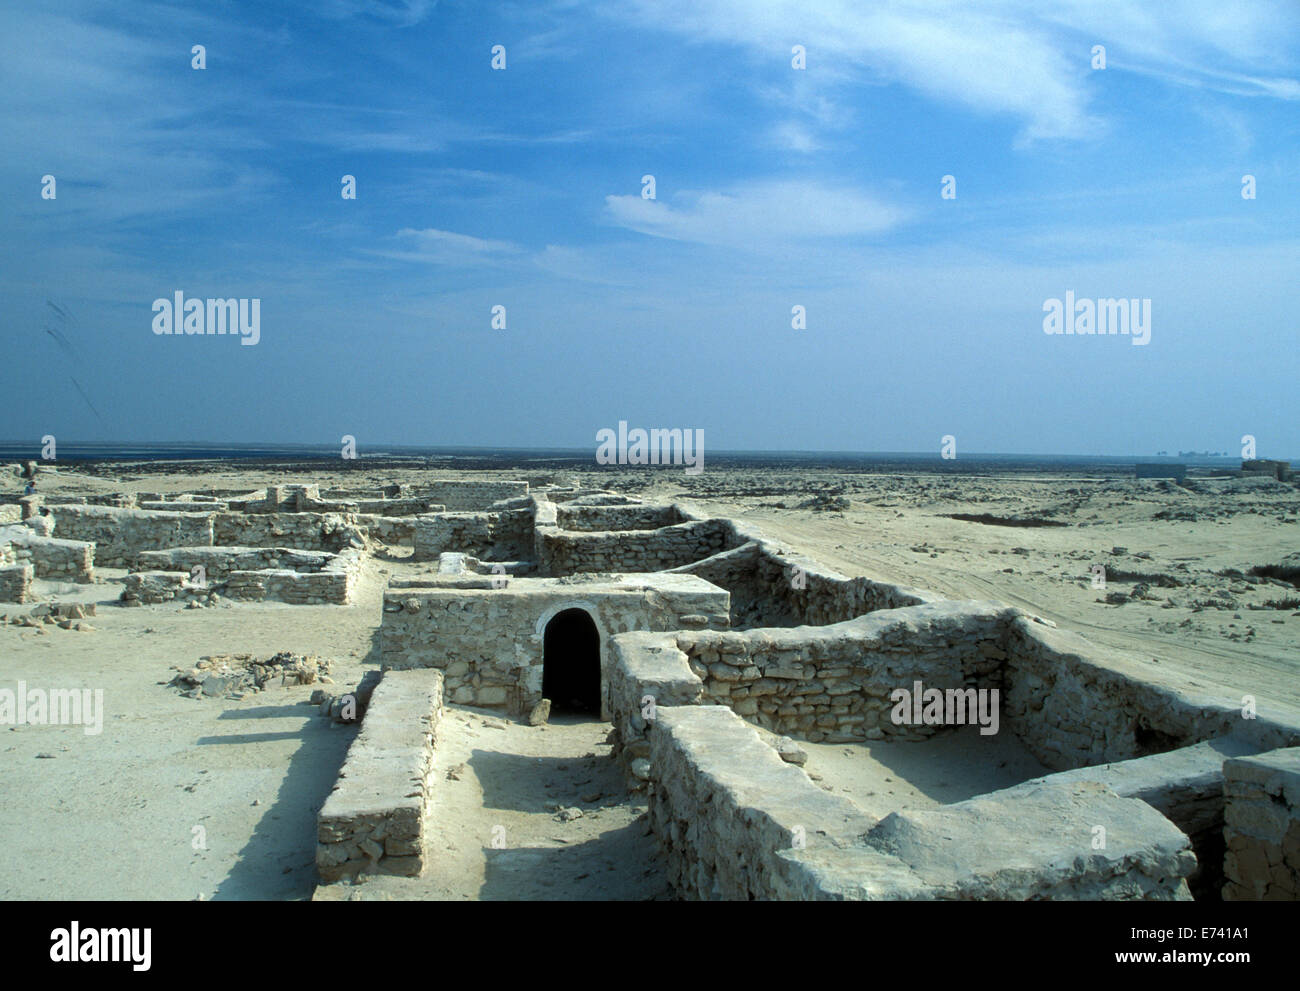 The ruins of  early settlement at al-Zubarah, Qatar - Stock Image